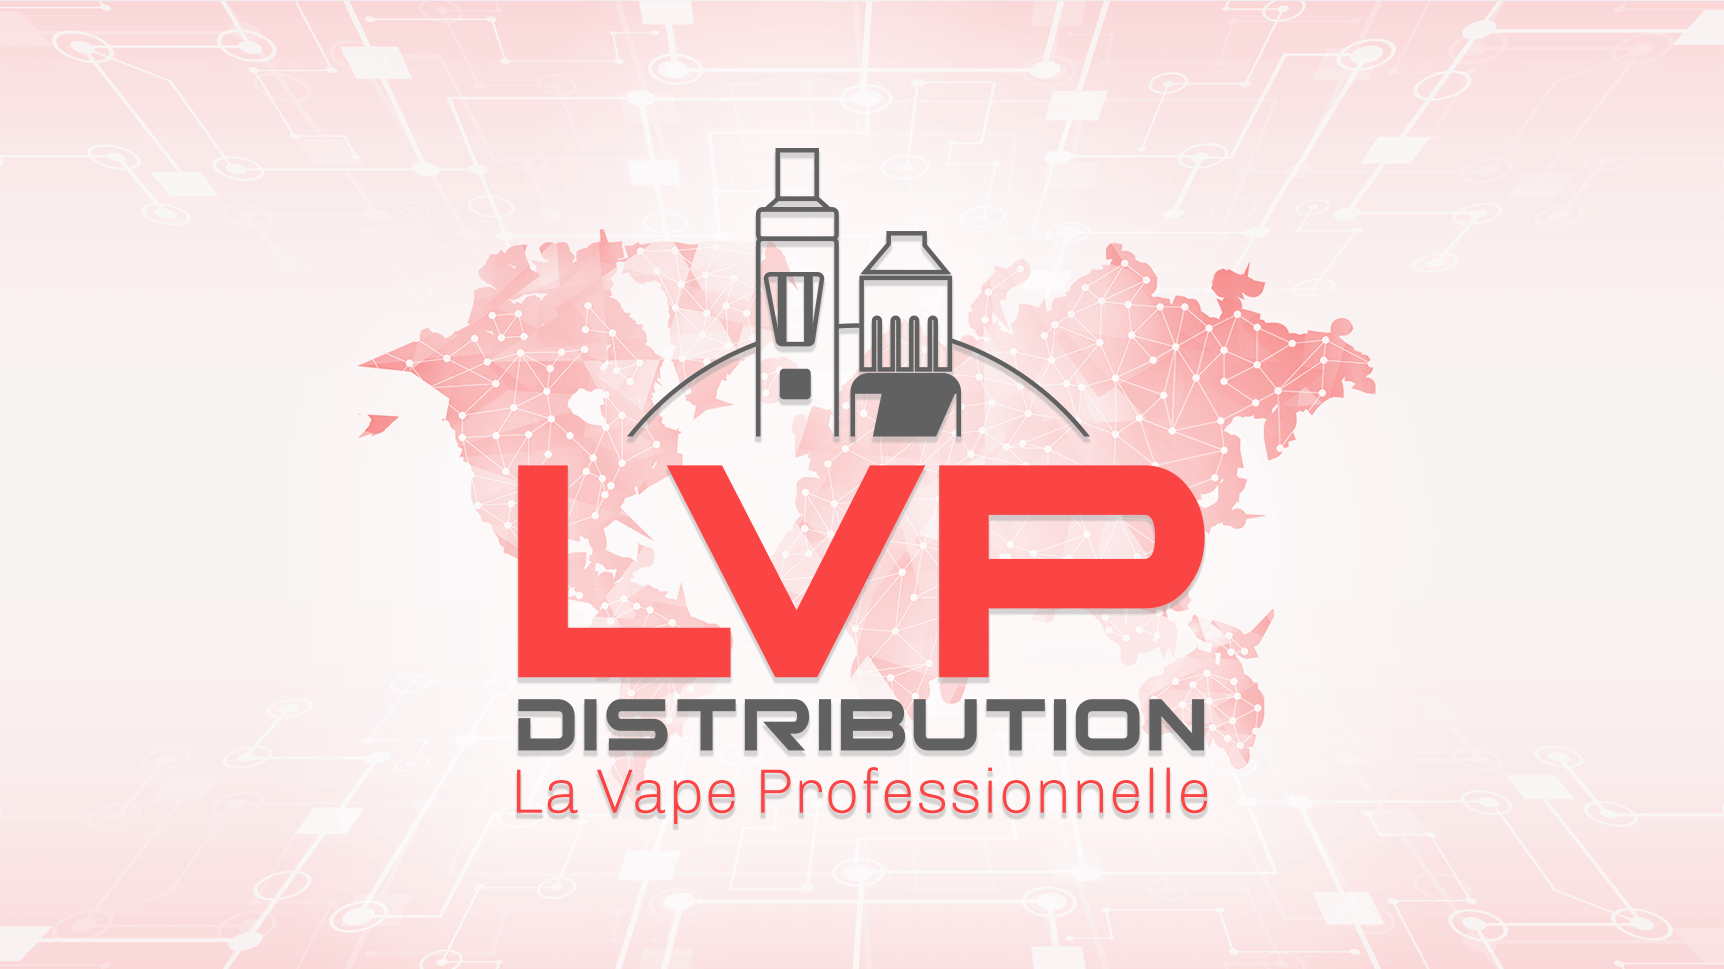 LVP Distribution